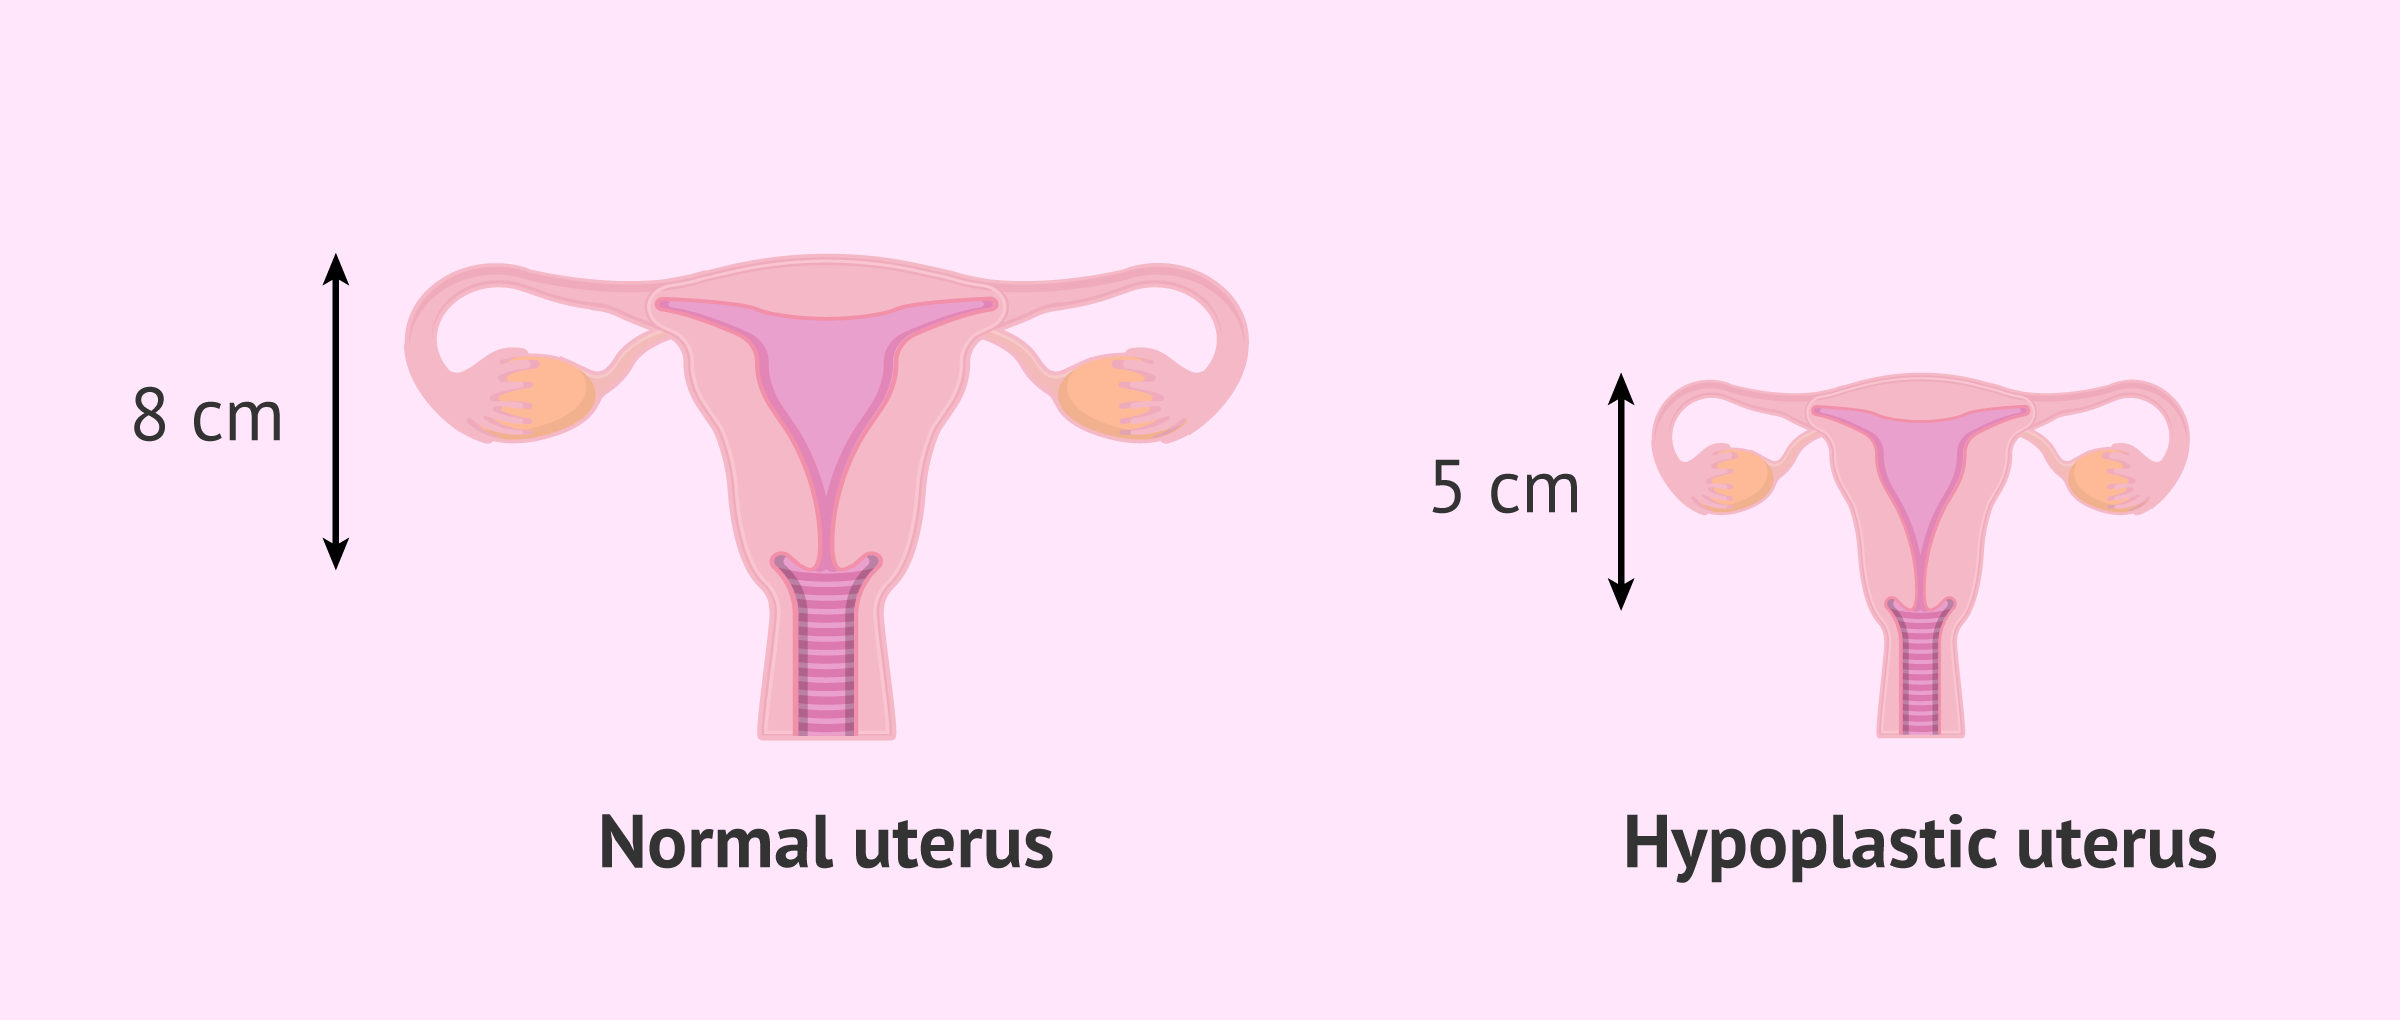 What is a hypoplastic uterus?